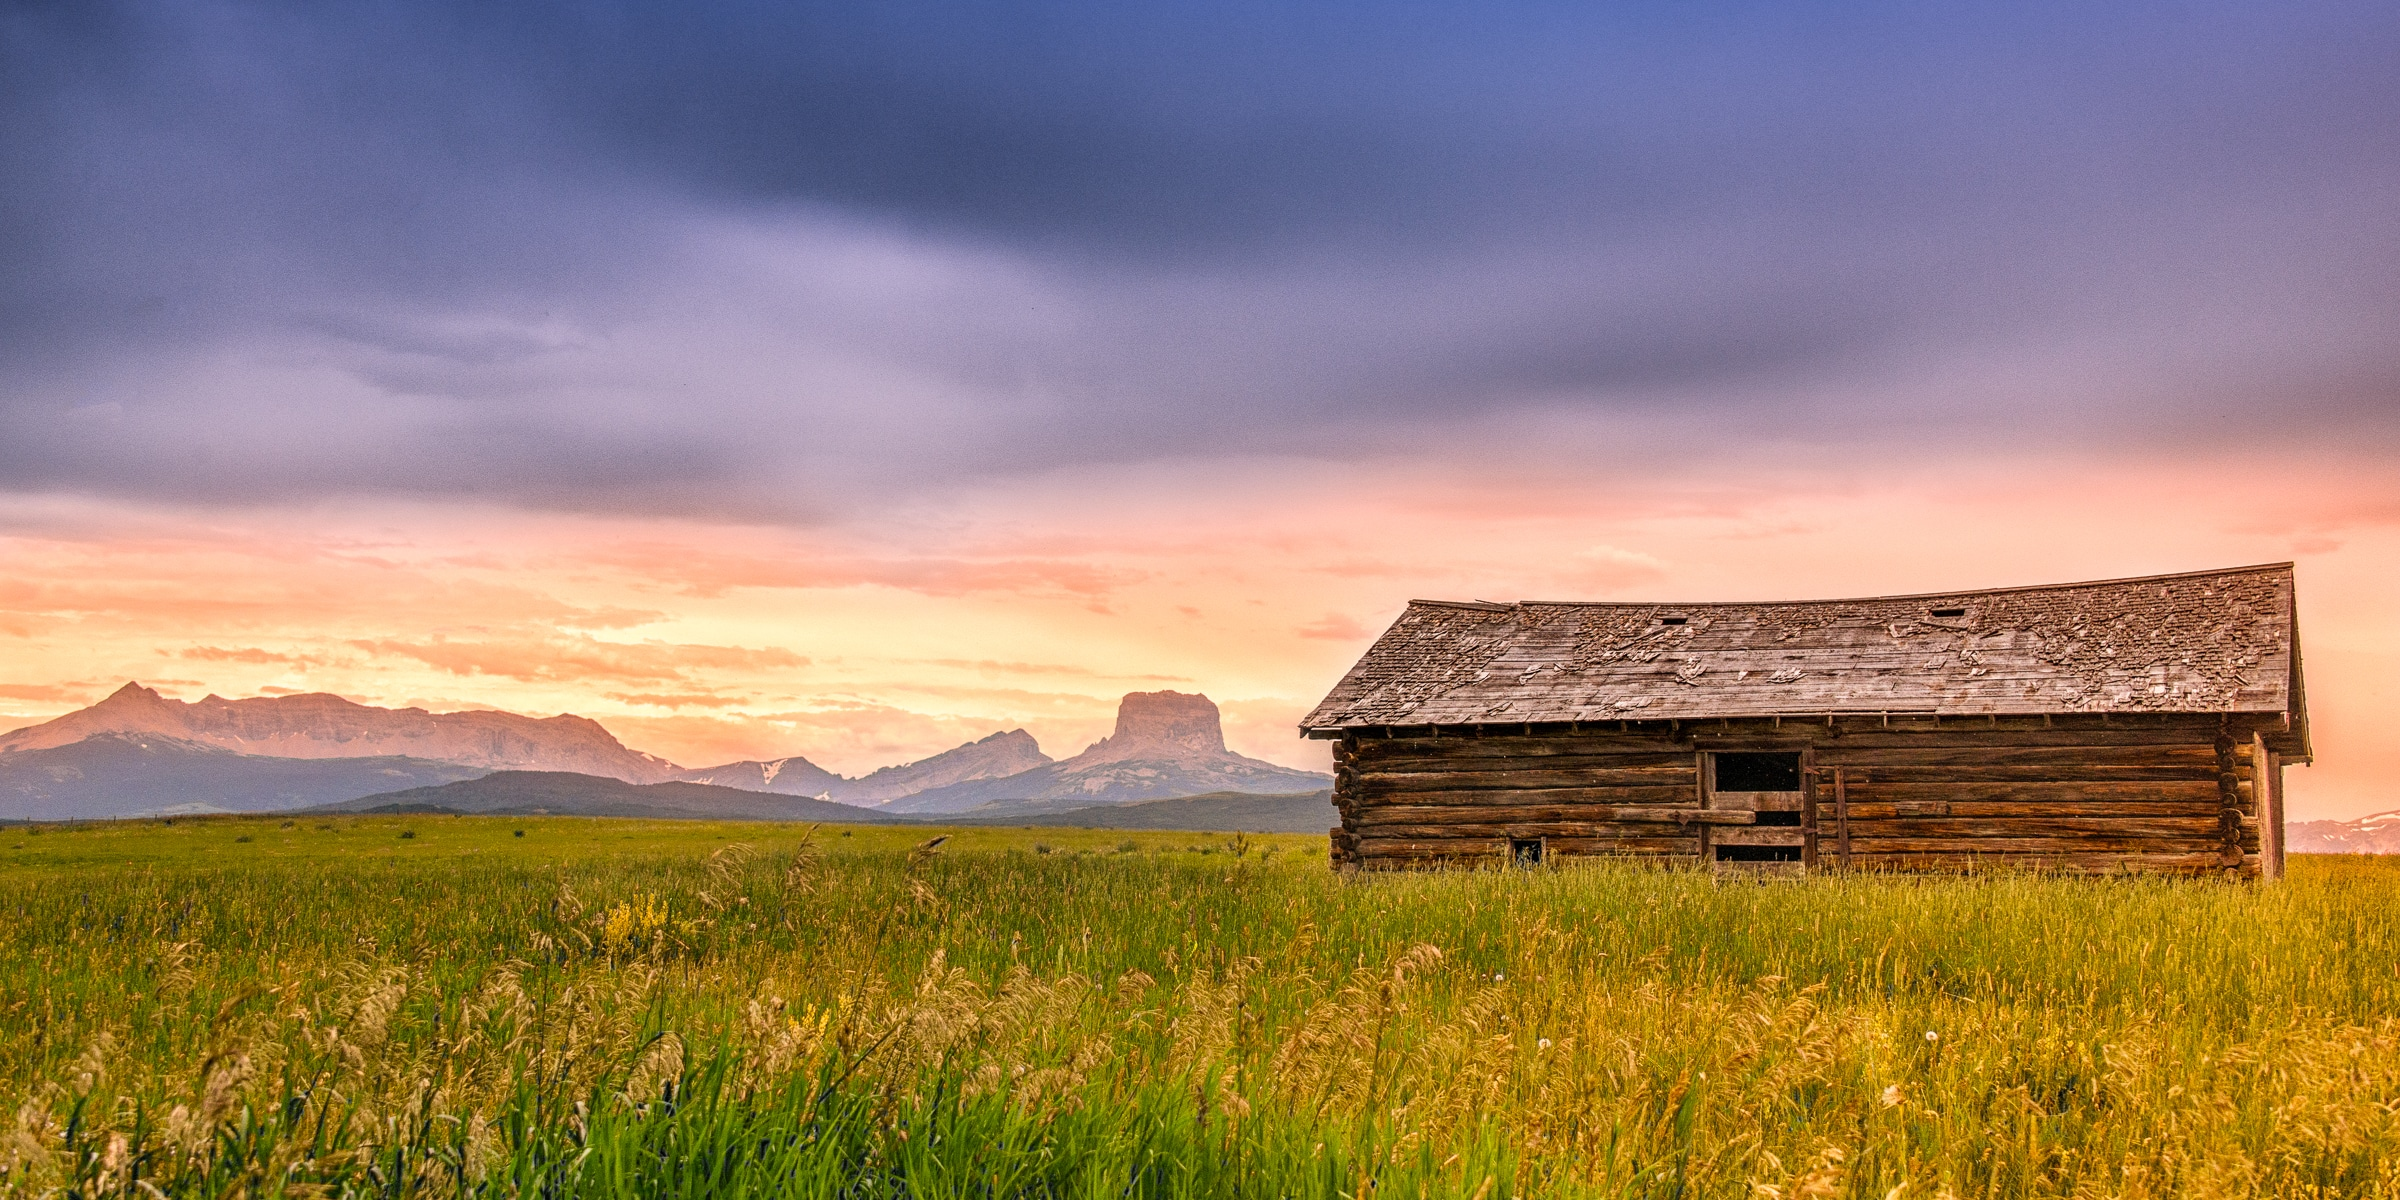 This log barn sits in the middle of a prarie, just east of theGlacier National Park boundary on Highway 89 between Babb and Conway, Montana. Montana Summer Landscapes